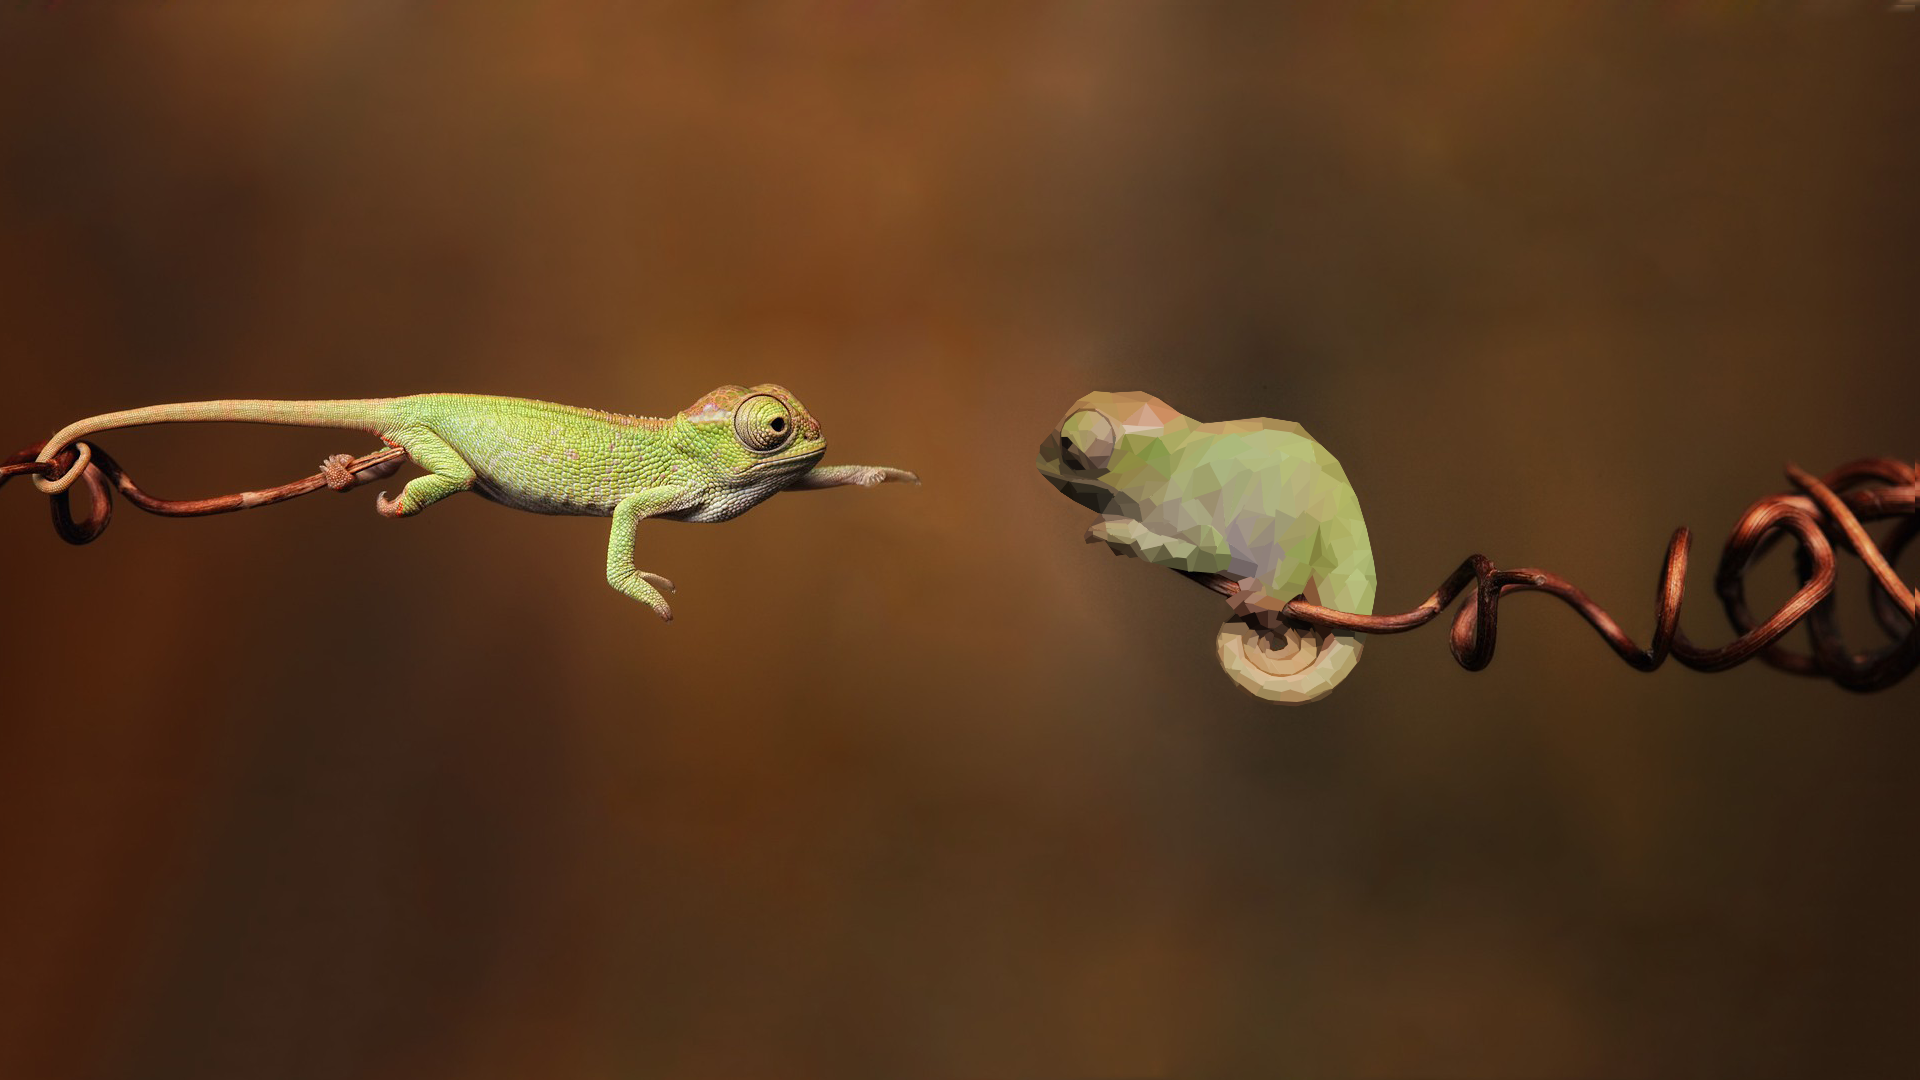 Made a low poly of a chameleon wallpaper. : wallpapers